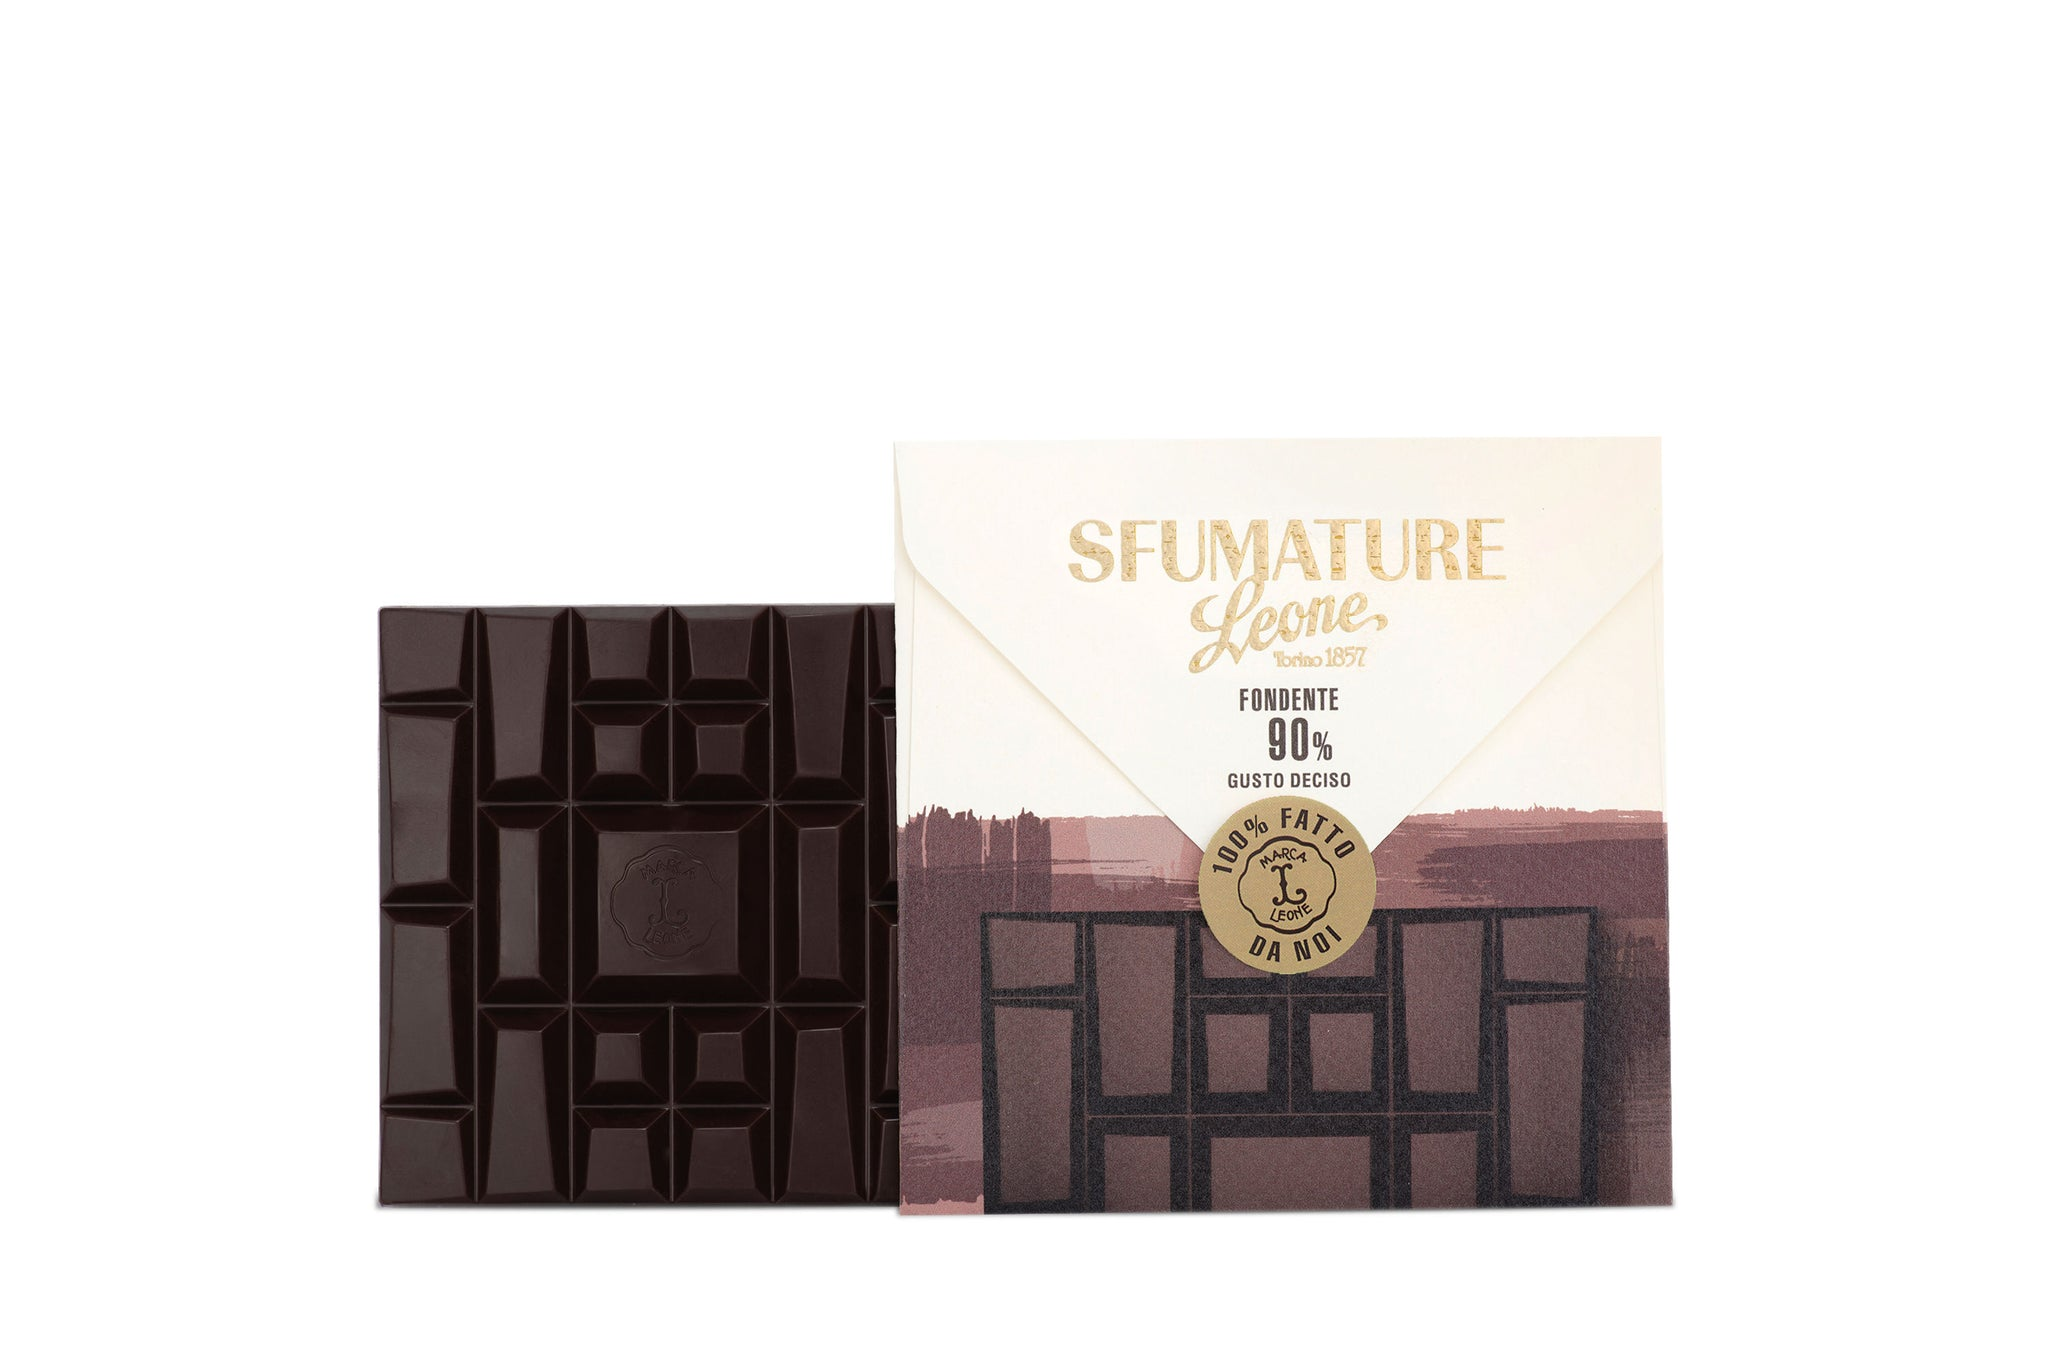 Pastiglie Leone Sfumature 90% Bean to Bar Dark Chocolate Intense 75g